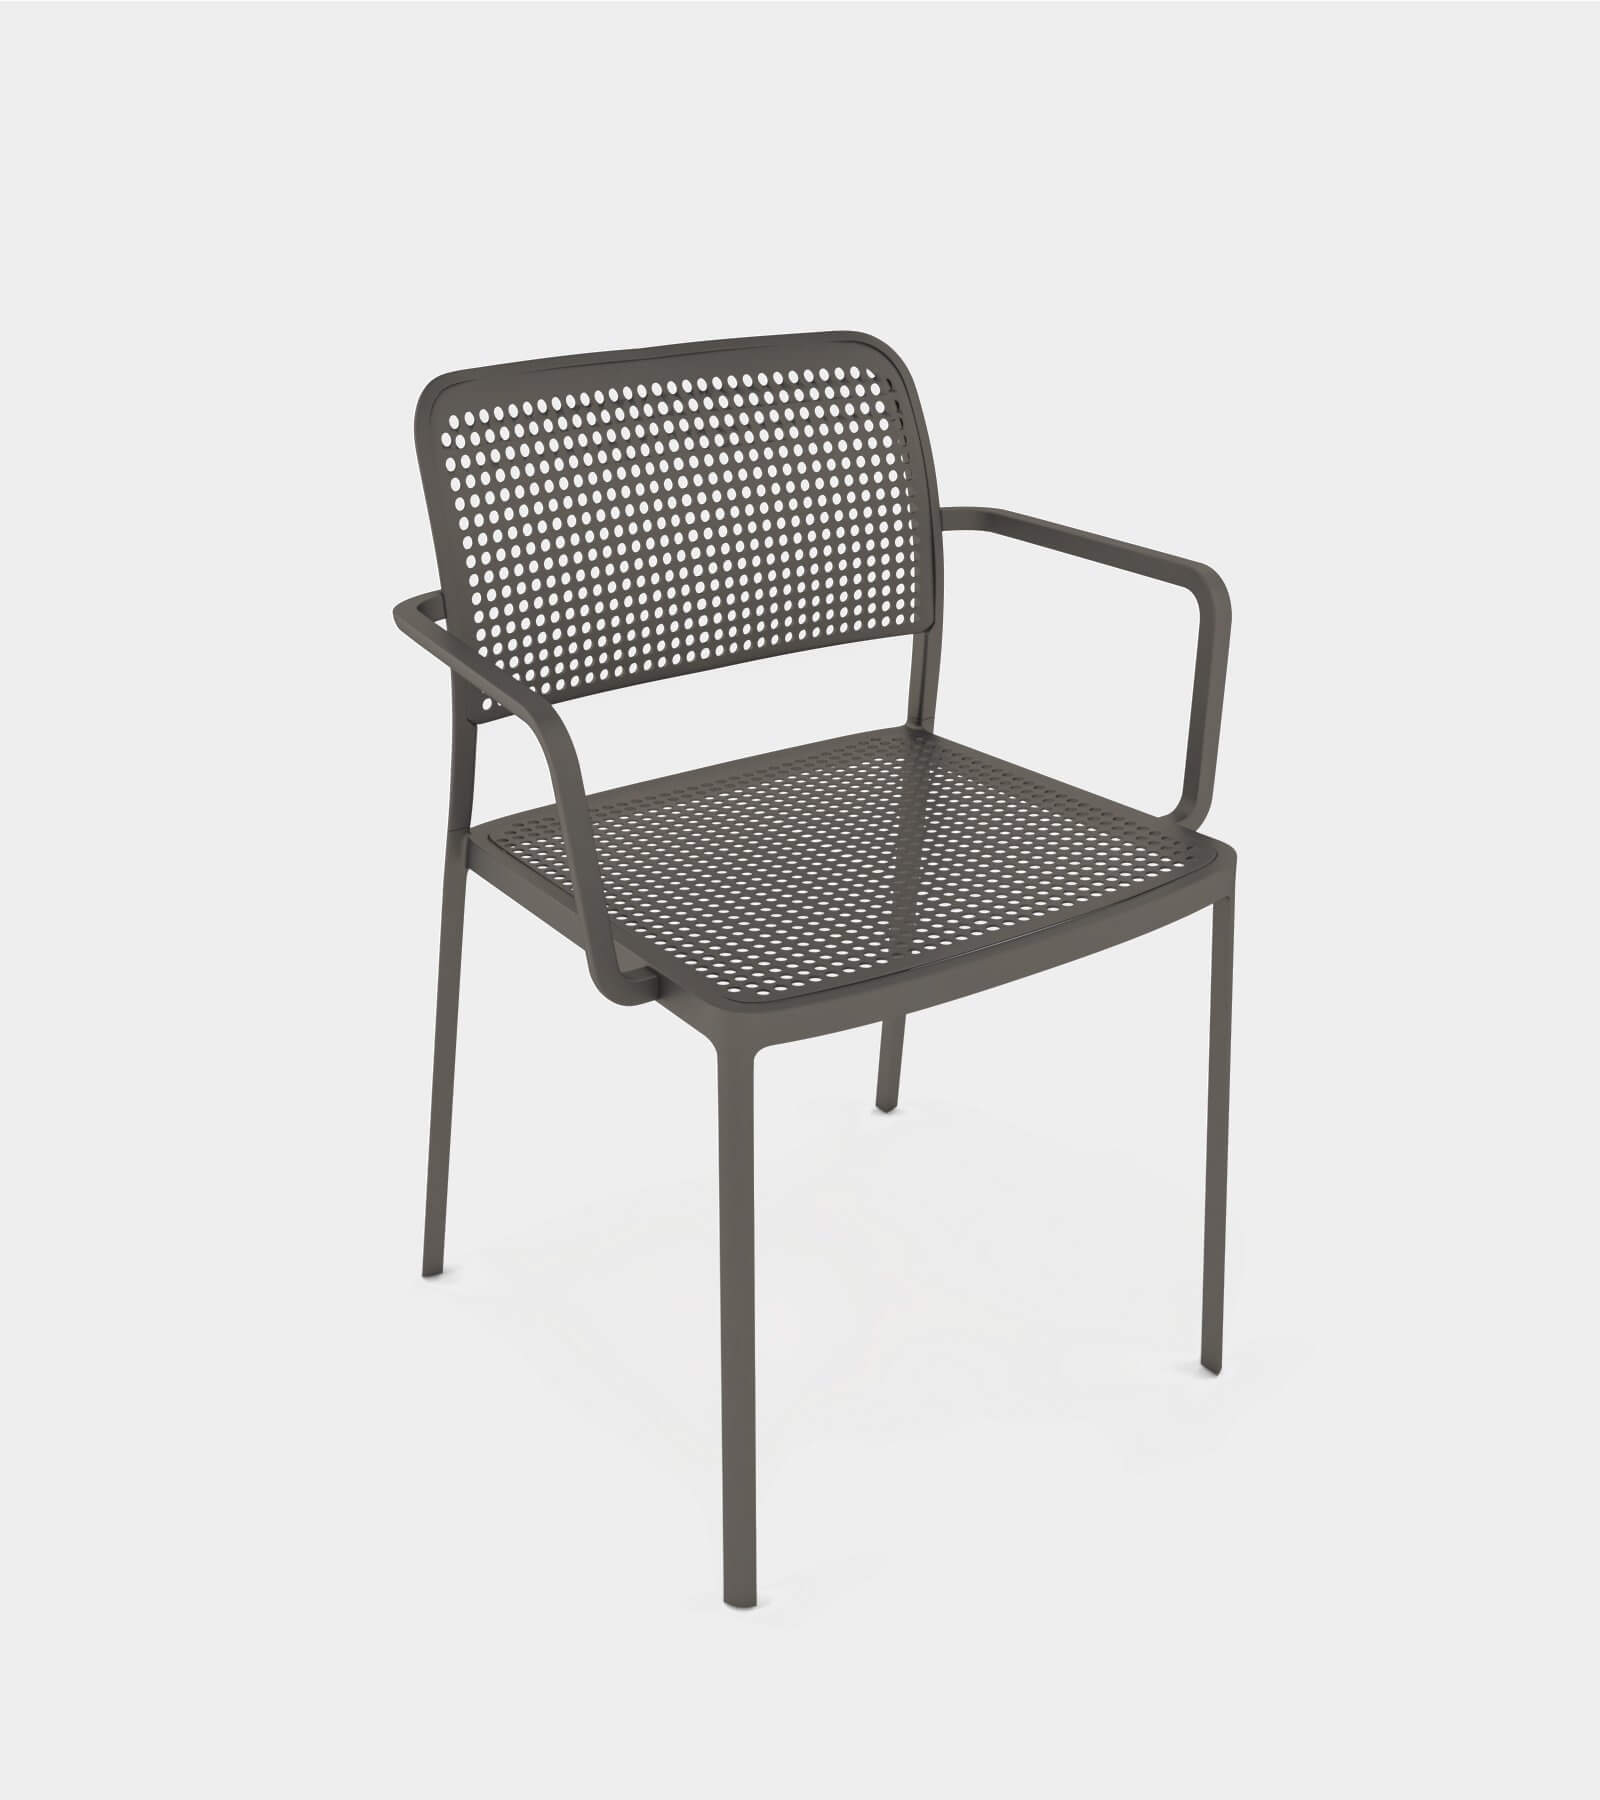 Aluminium armchair for interior and exterior-2 3D Model